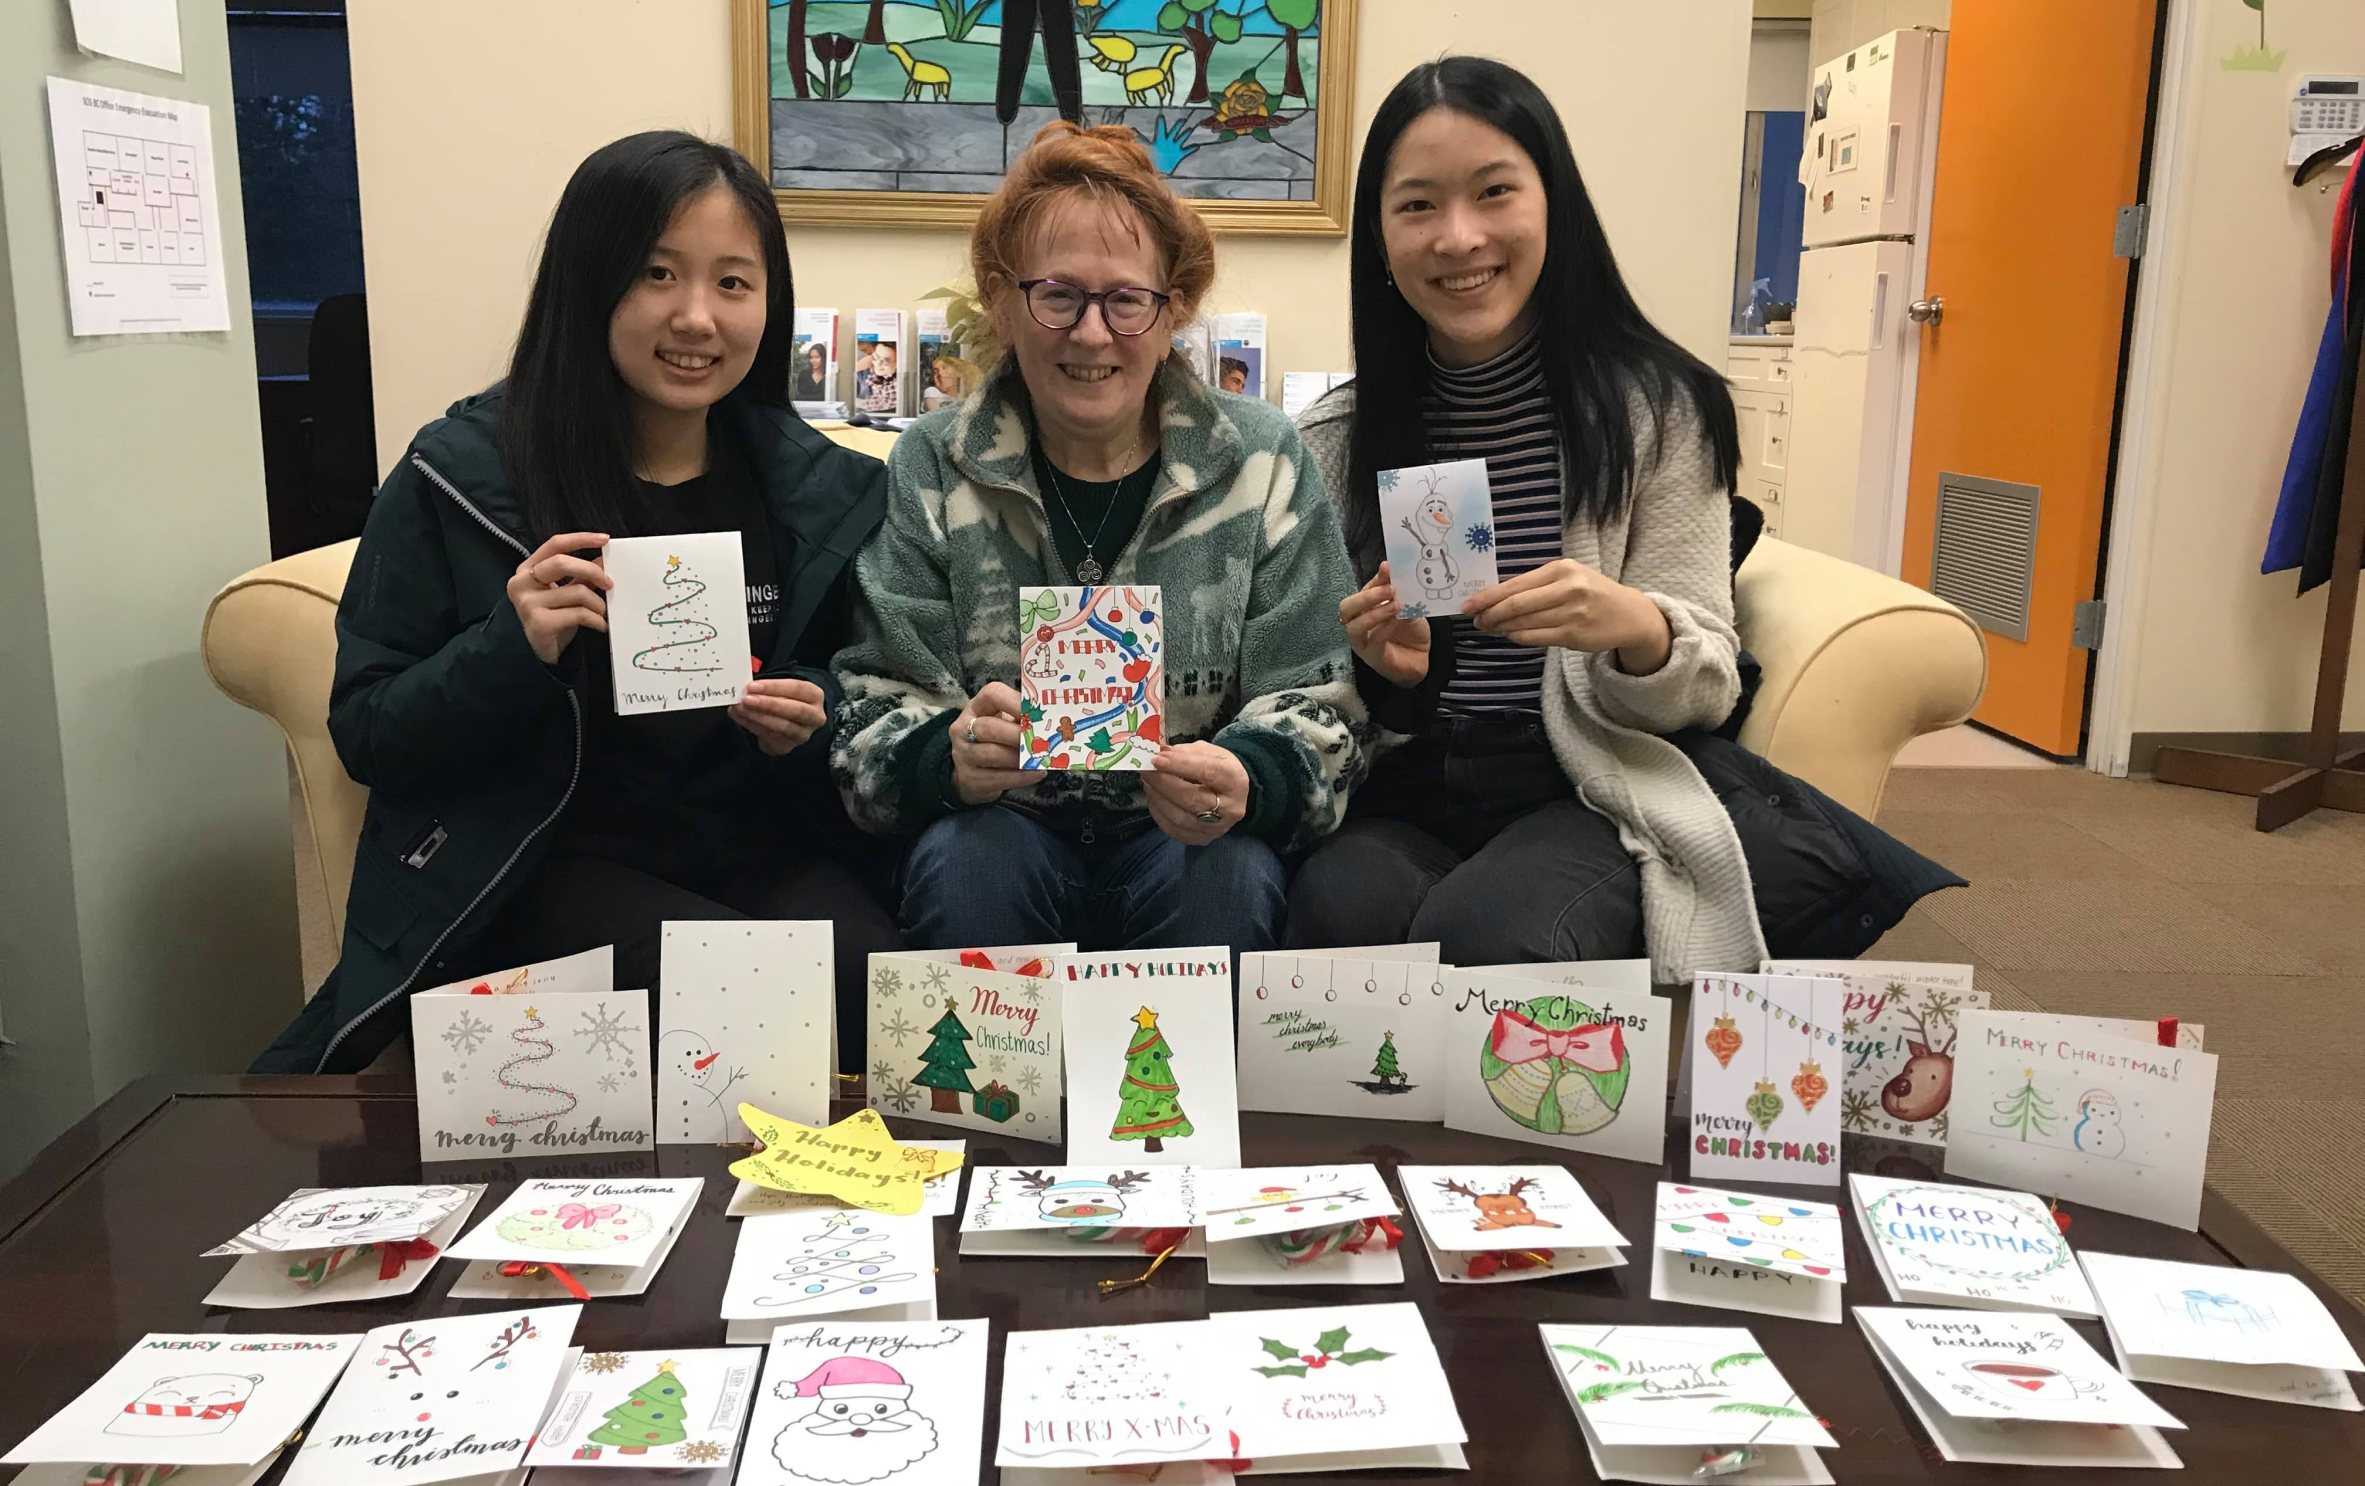 3 people holding up christmas cards